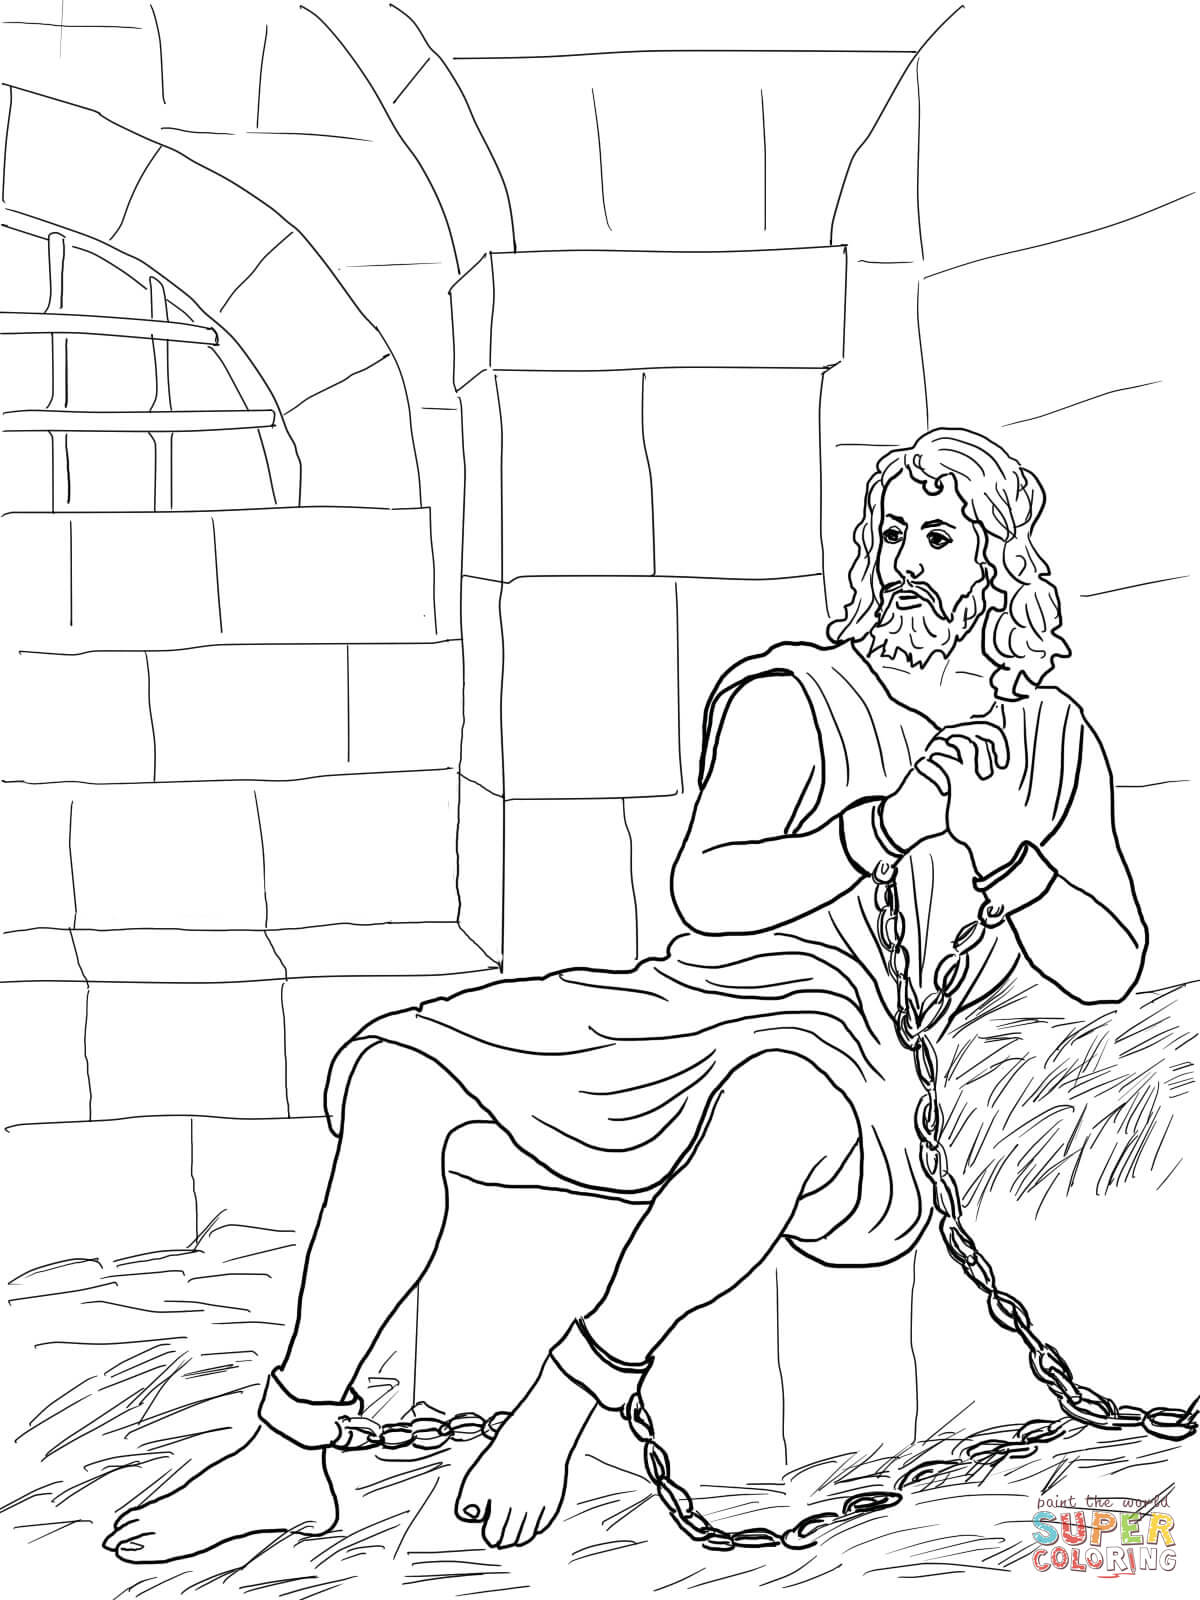 coloring pages joseph in jail - photo#29